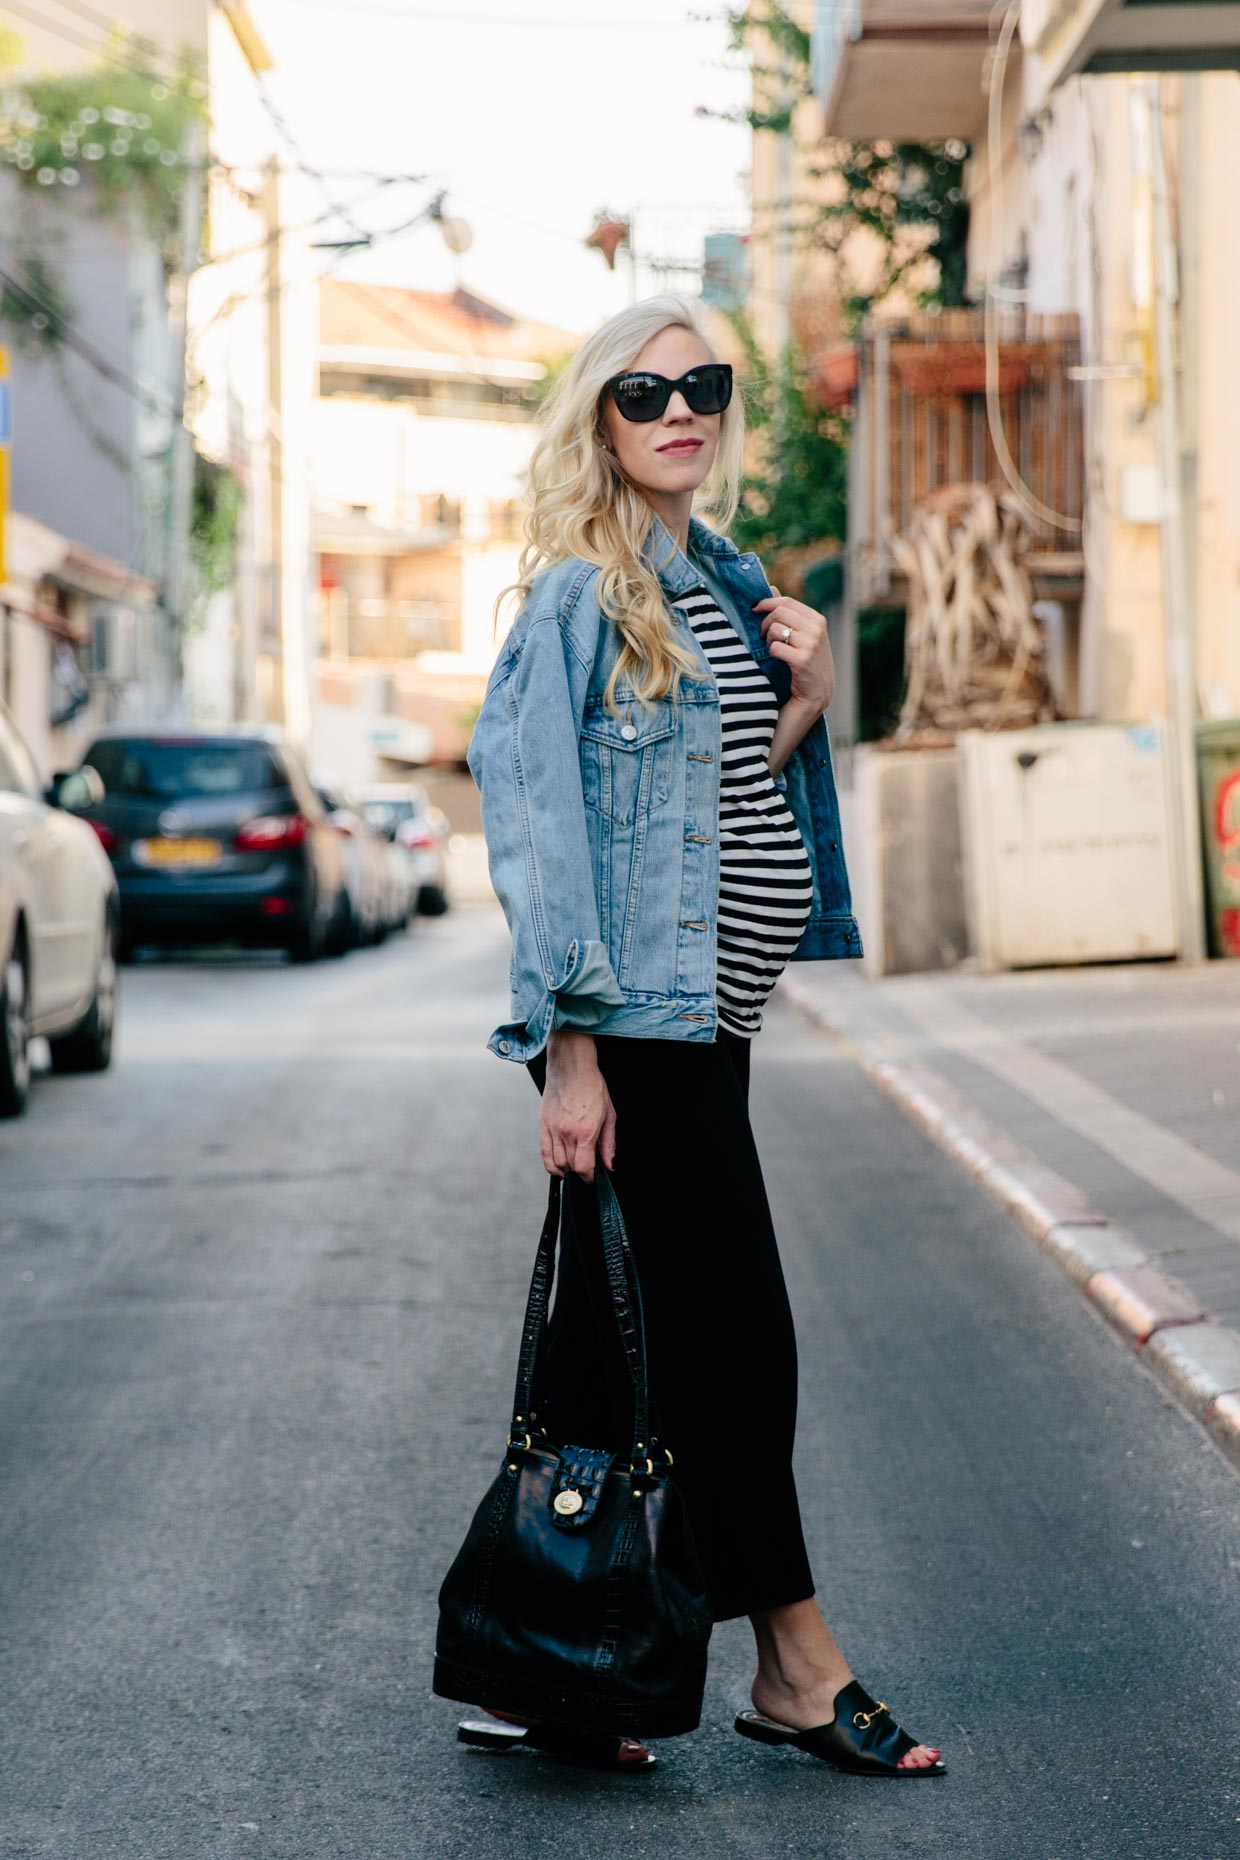 e63461881e0 Meagan's Moda fashion blogger wears Levi's Ex Boyfriend denim jacket with striped  tee and cropped wide leg pants, chic maternity outfit with Gucci loafers